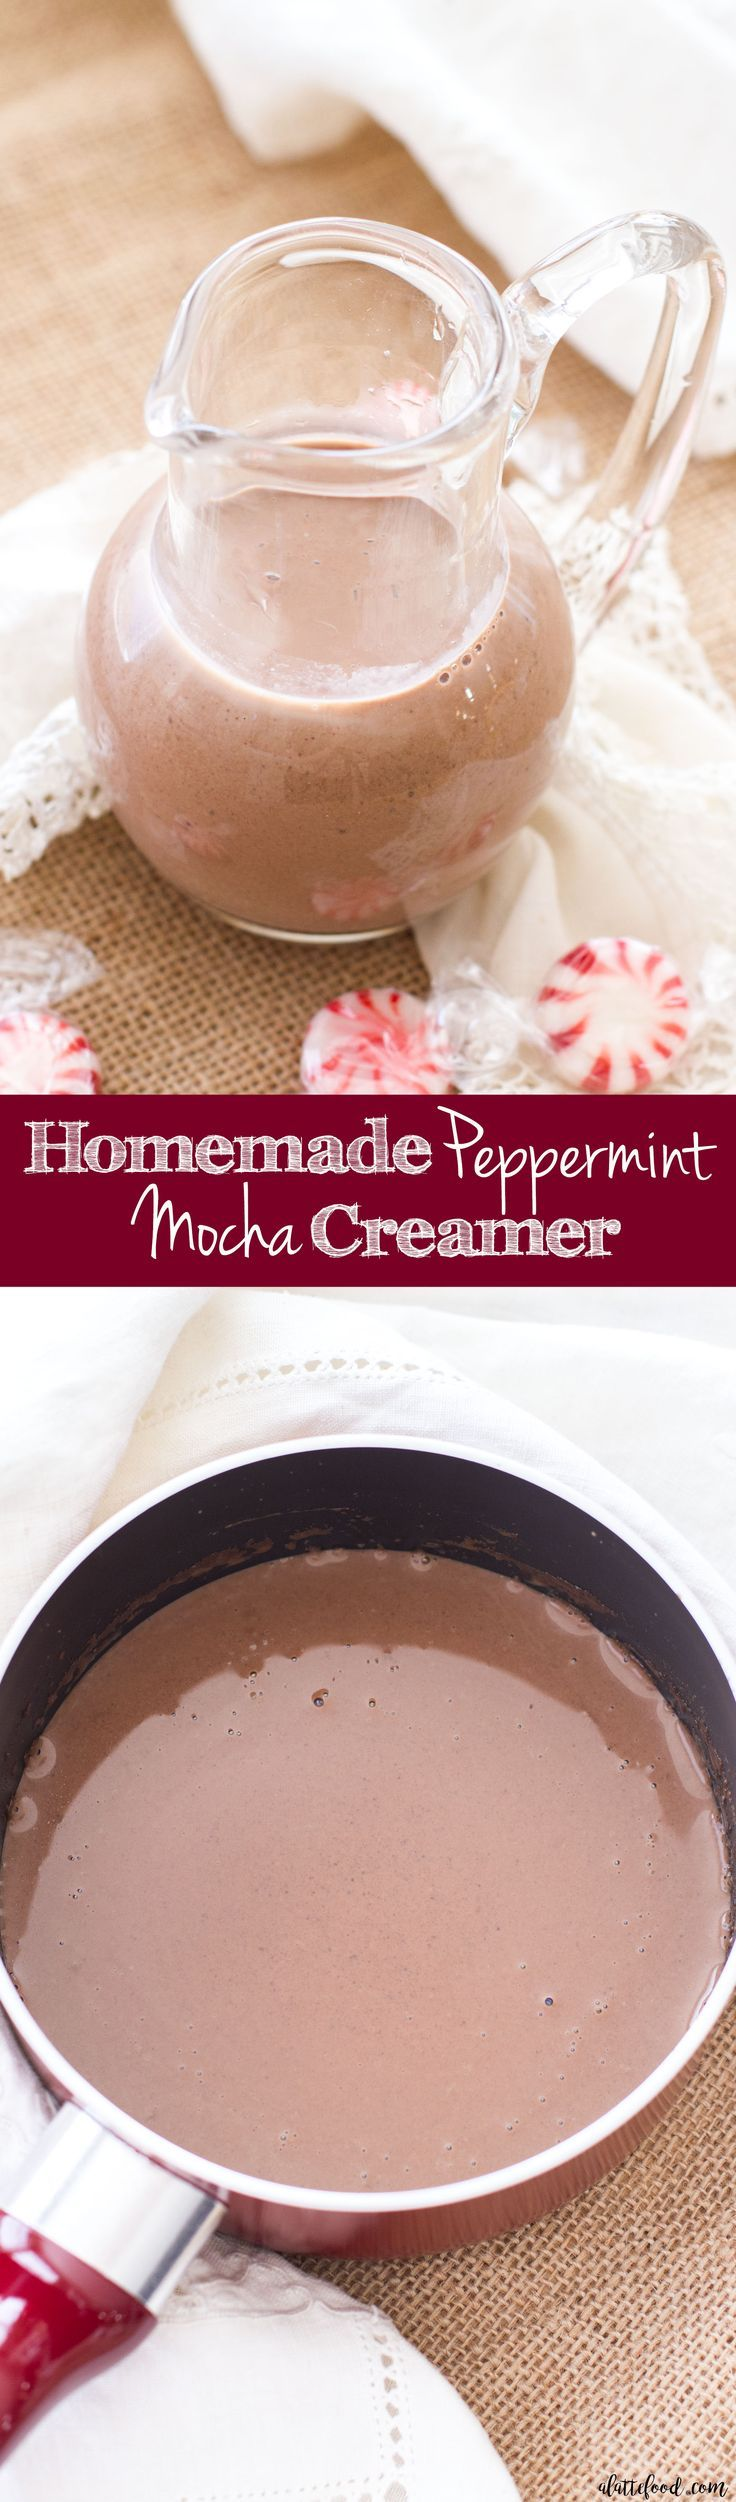 This easy homemade peppermint mocha creamer recipe is made with only 5-ingredients! Homemade creamer is easy to make and full of flavor!